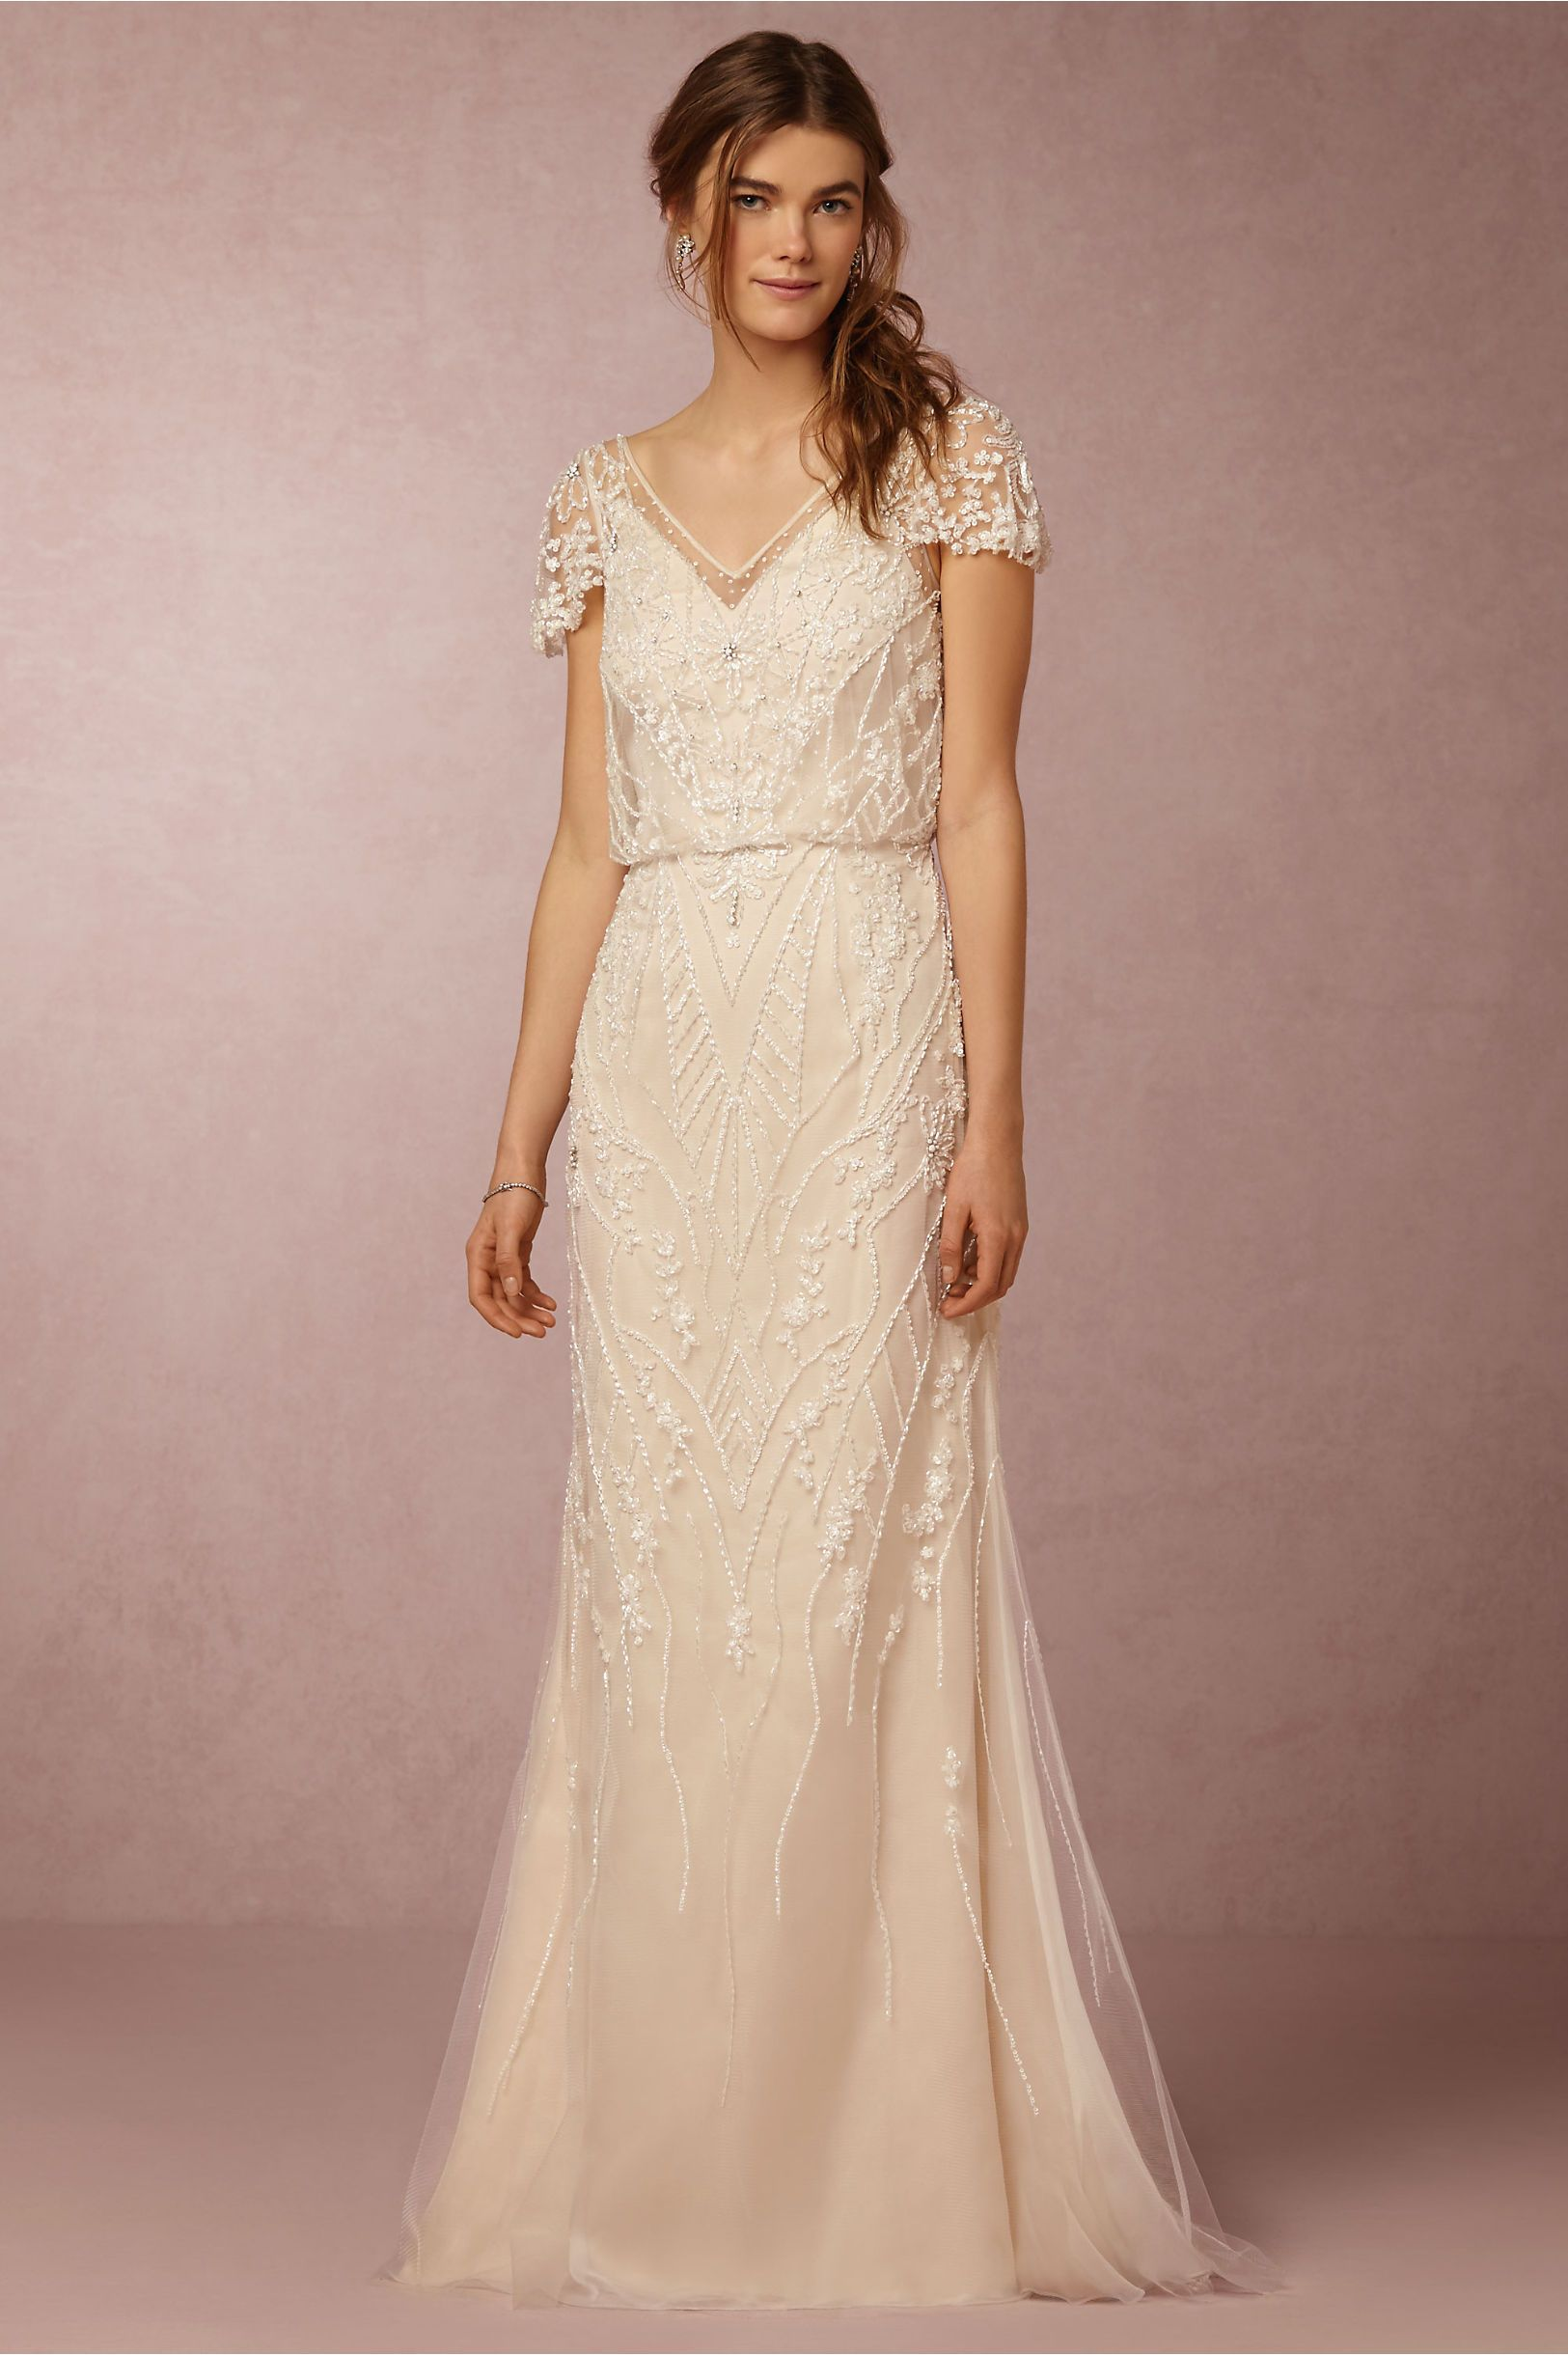 short sleeve wedding dresses BHLDN Aurora Gown in Bride Wedding Dresses at BHLDN mostly added b c I think it would look nice on Caitlin